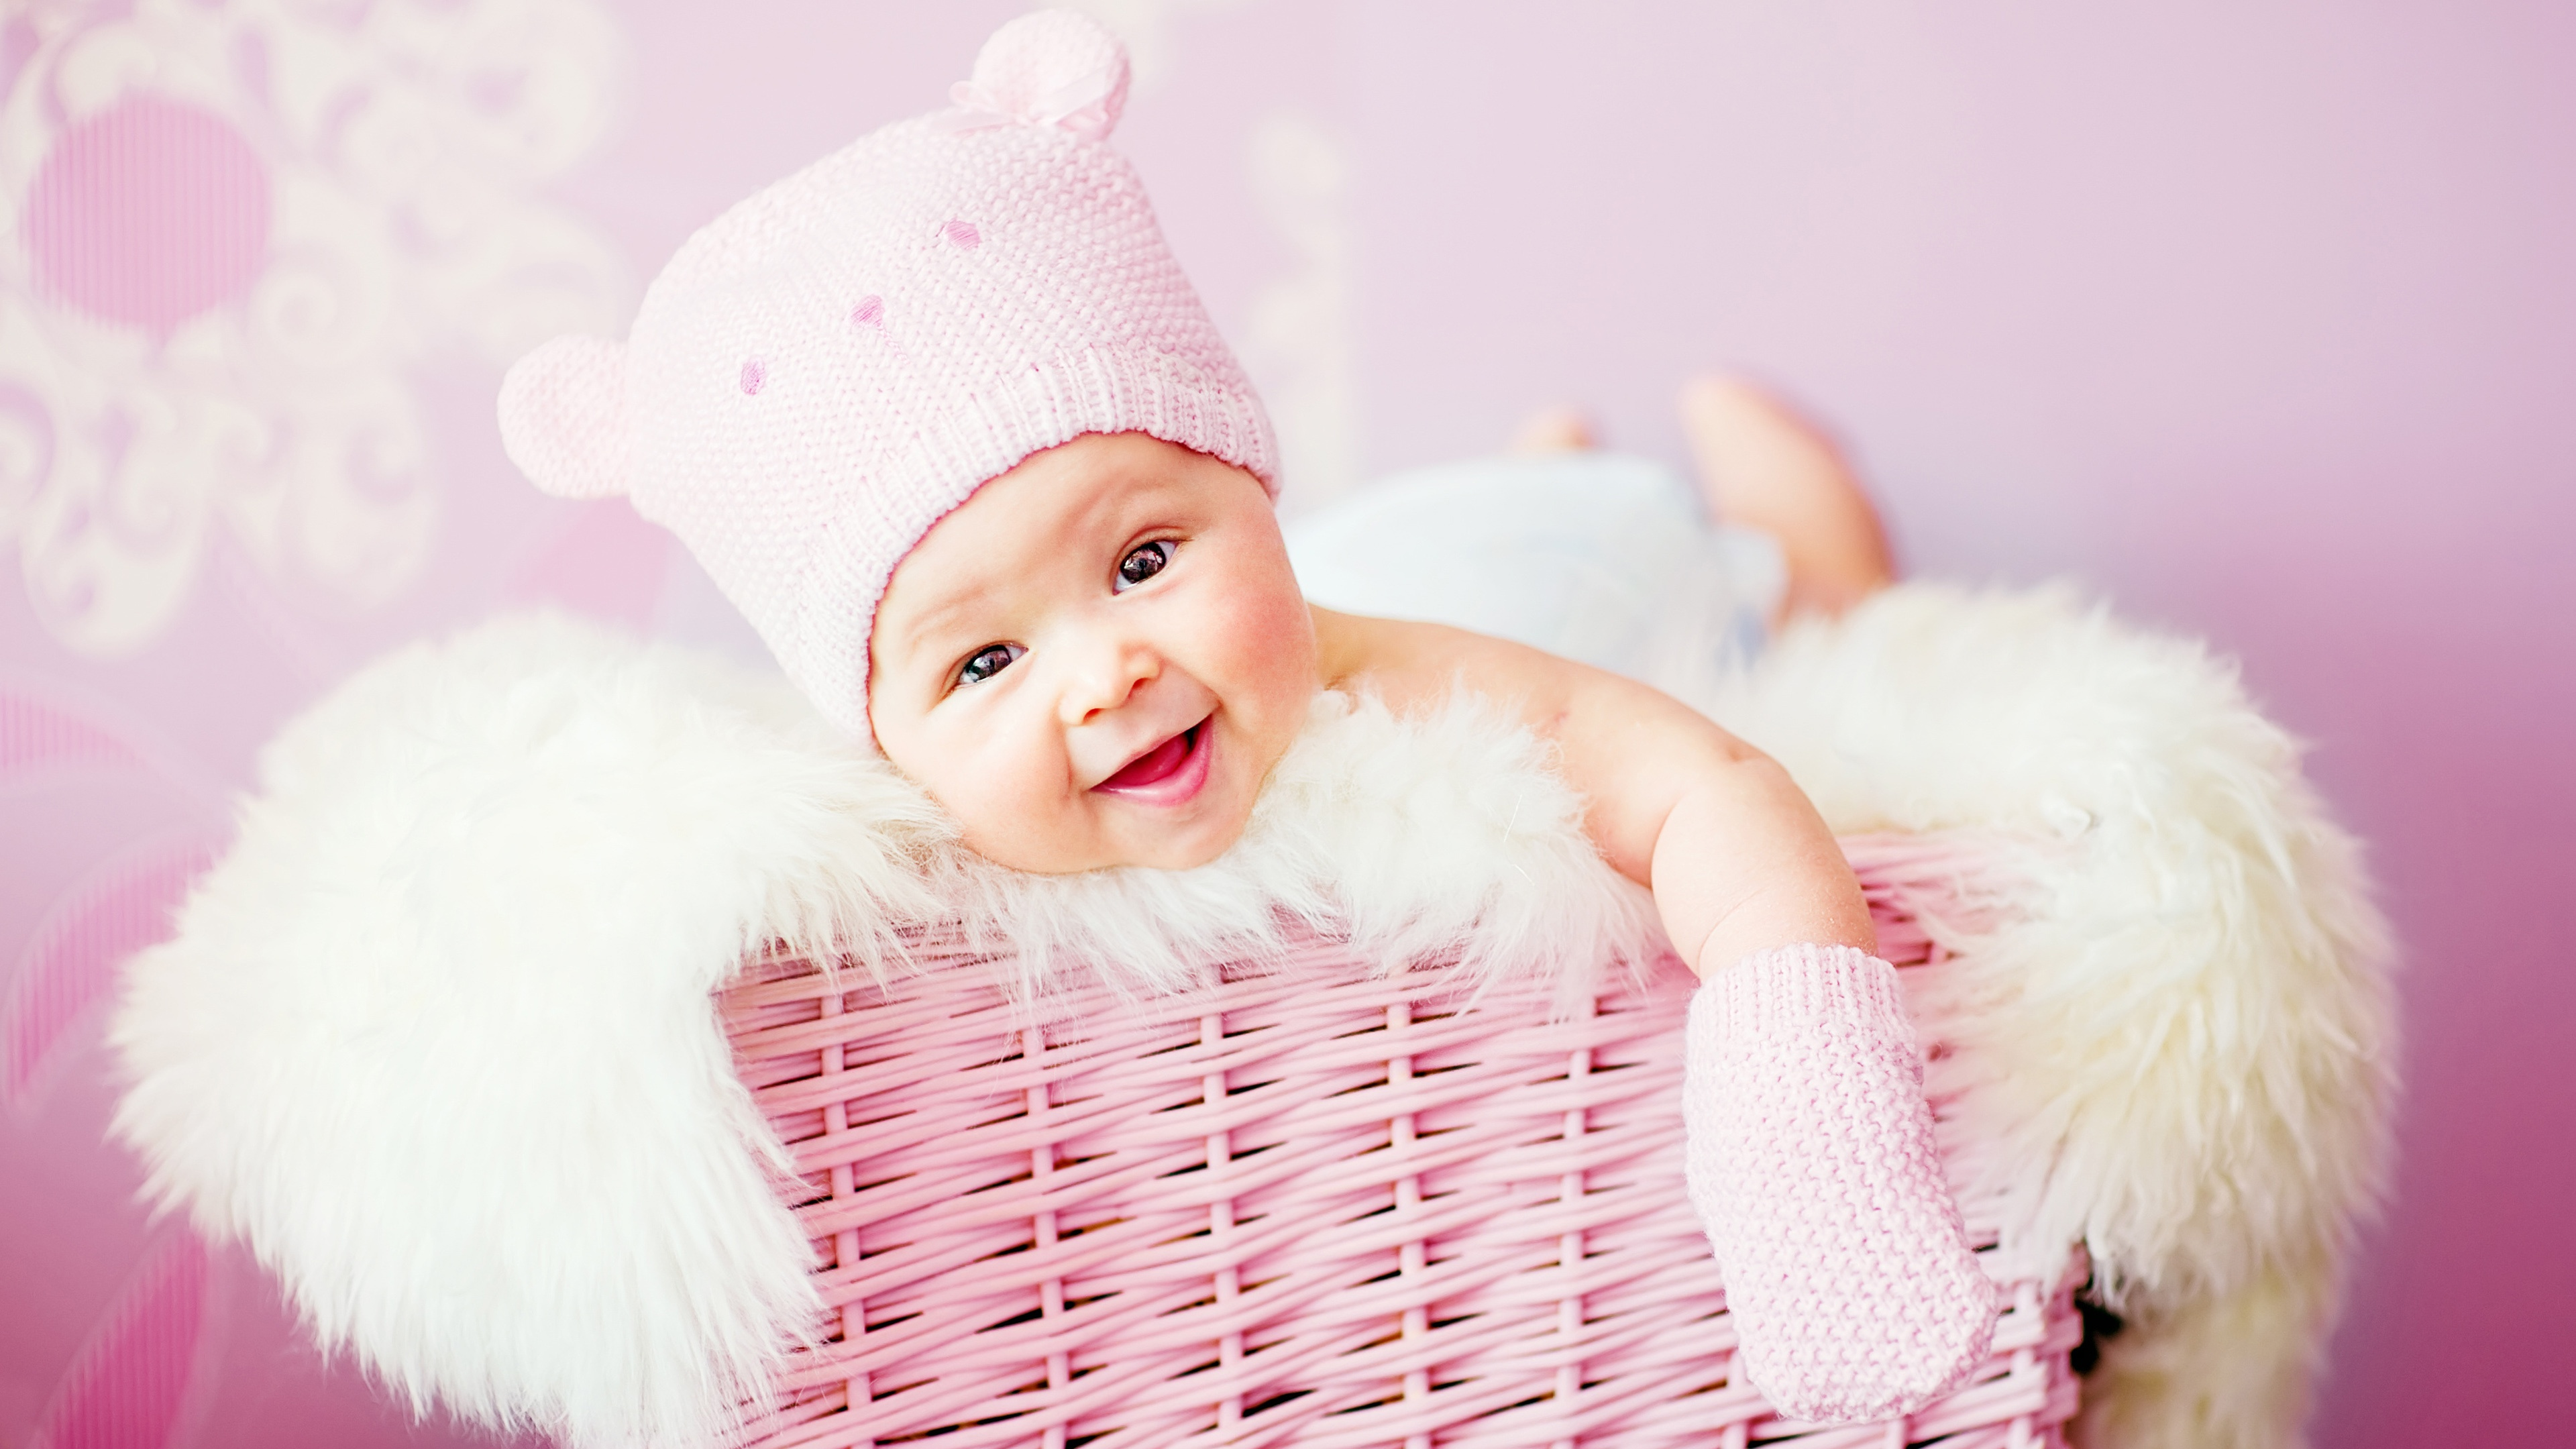 Baby Pink Iphone Wallpaper Baby 4k Ultra Hd Wallpaper And Background Image